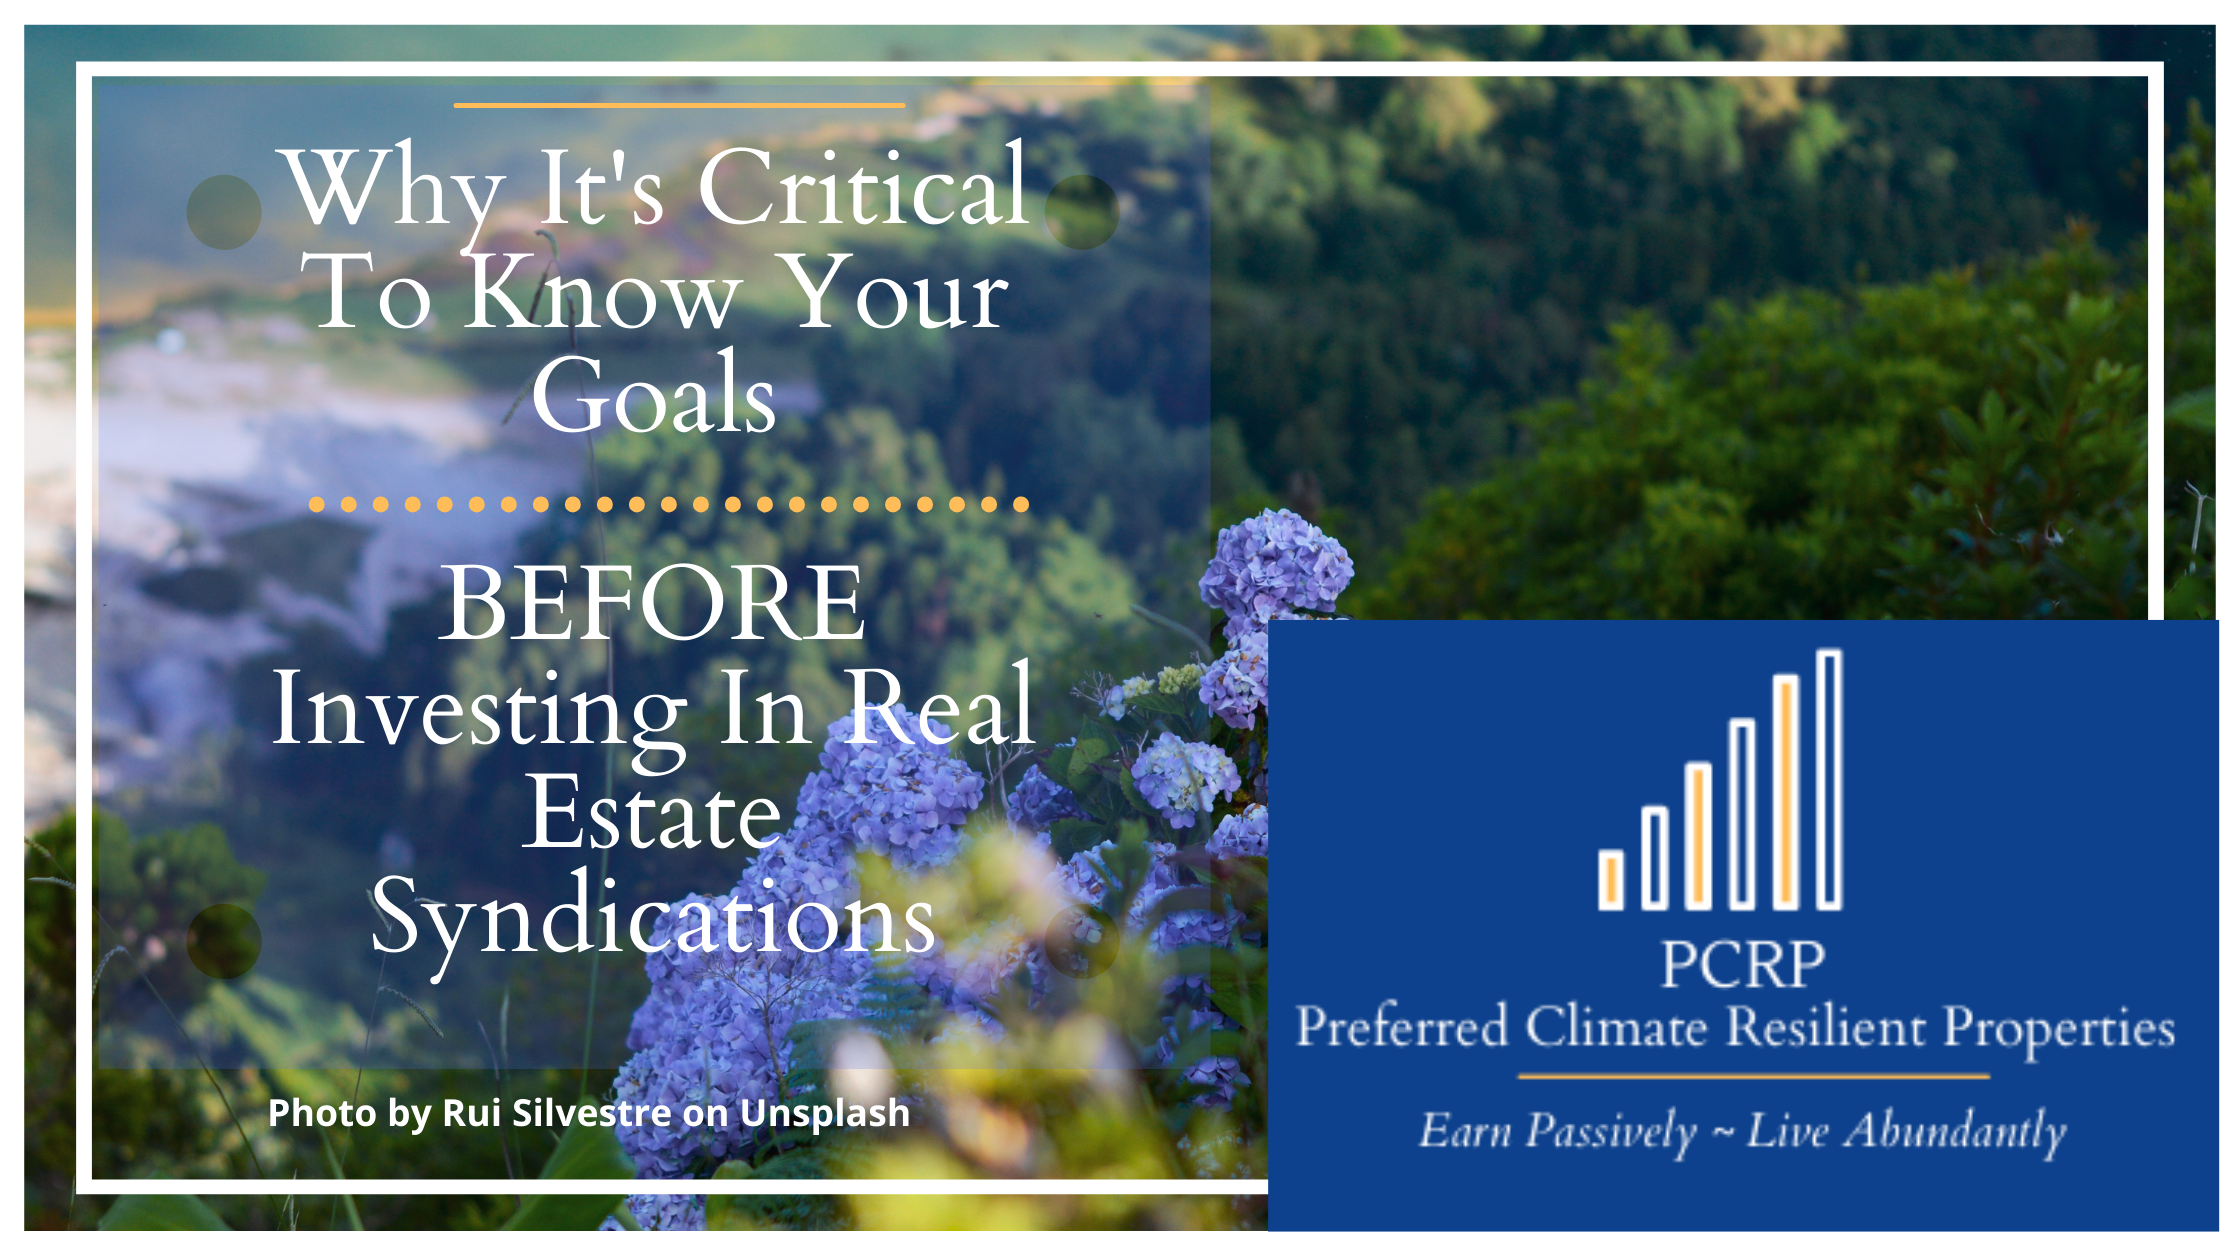 hydrangea - why it's critical to know your goals before investing in real estate syndications